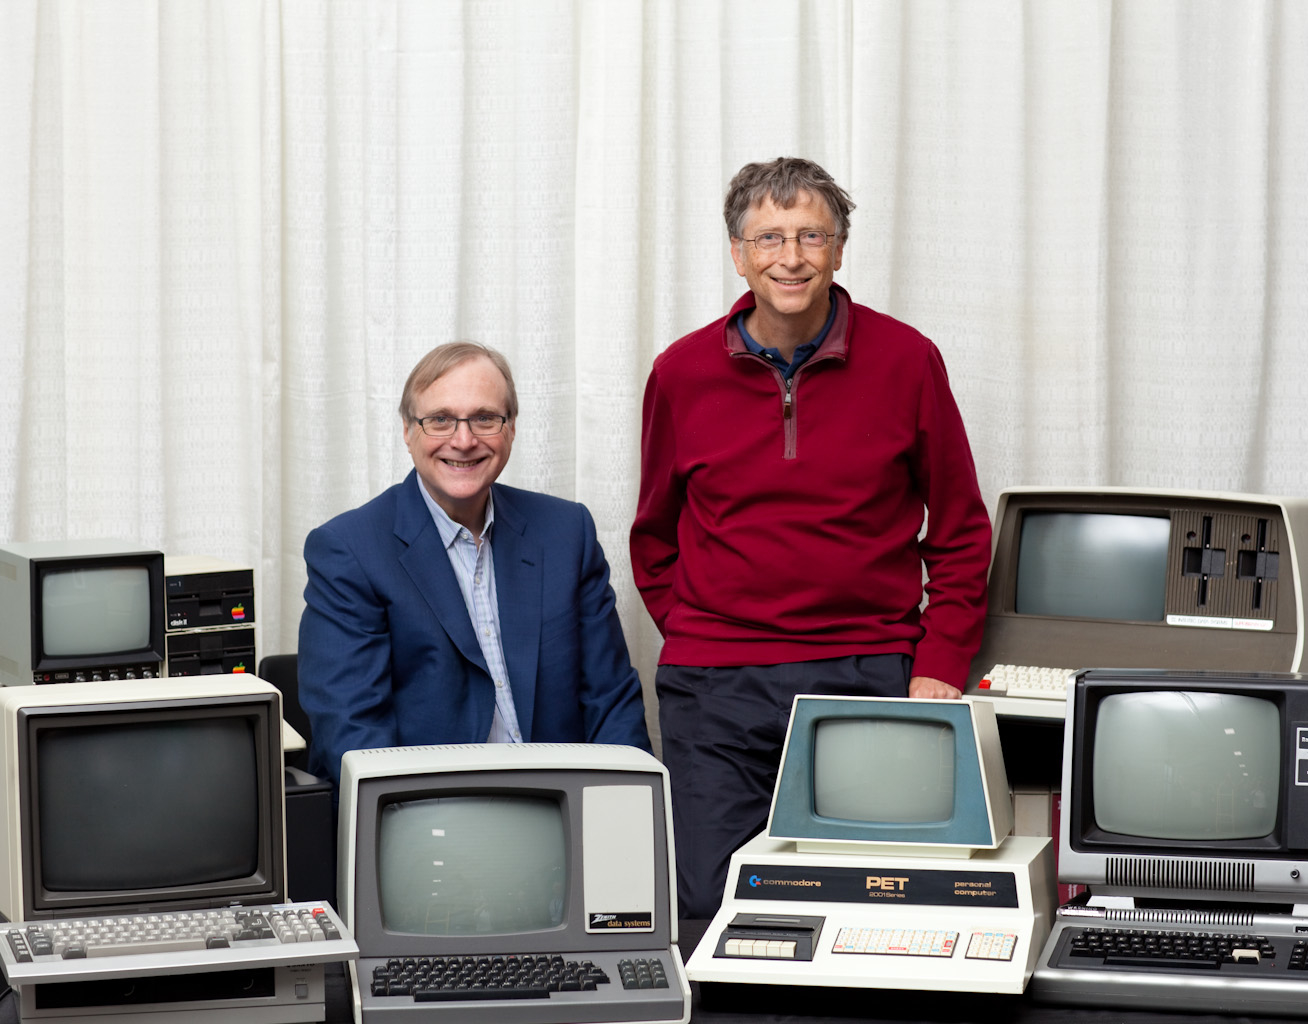 bill-gates-paul-allen-nova